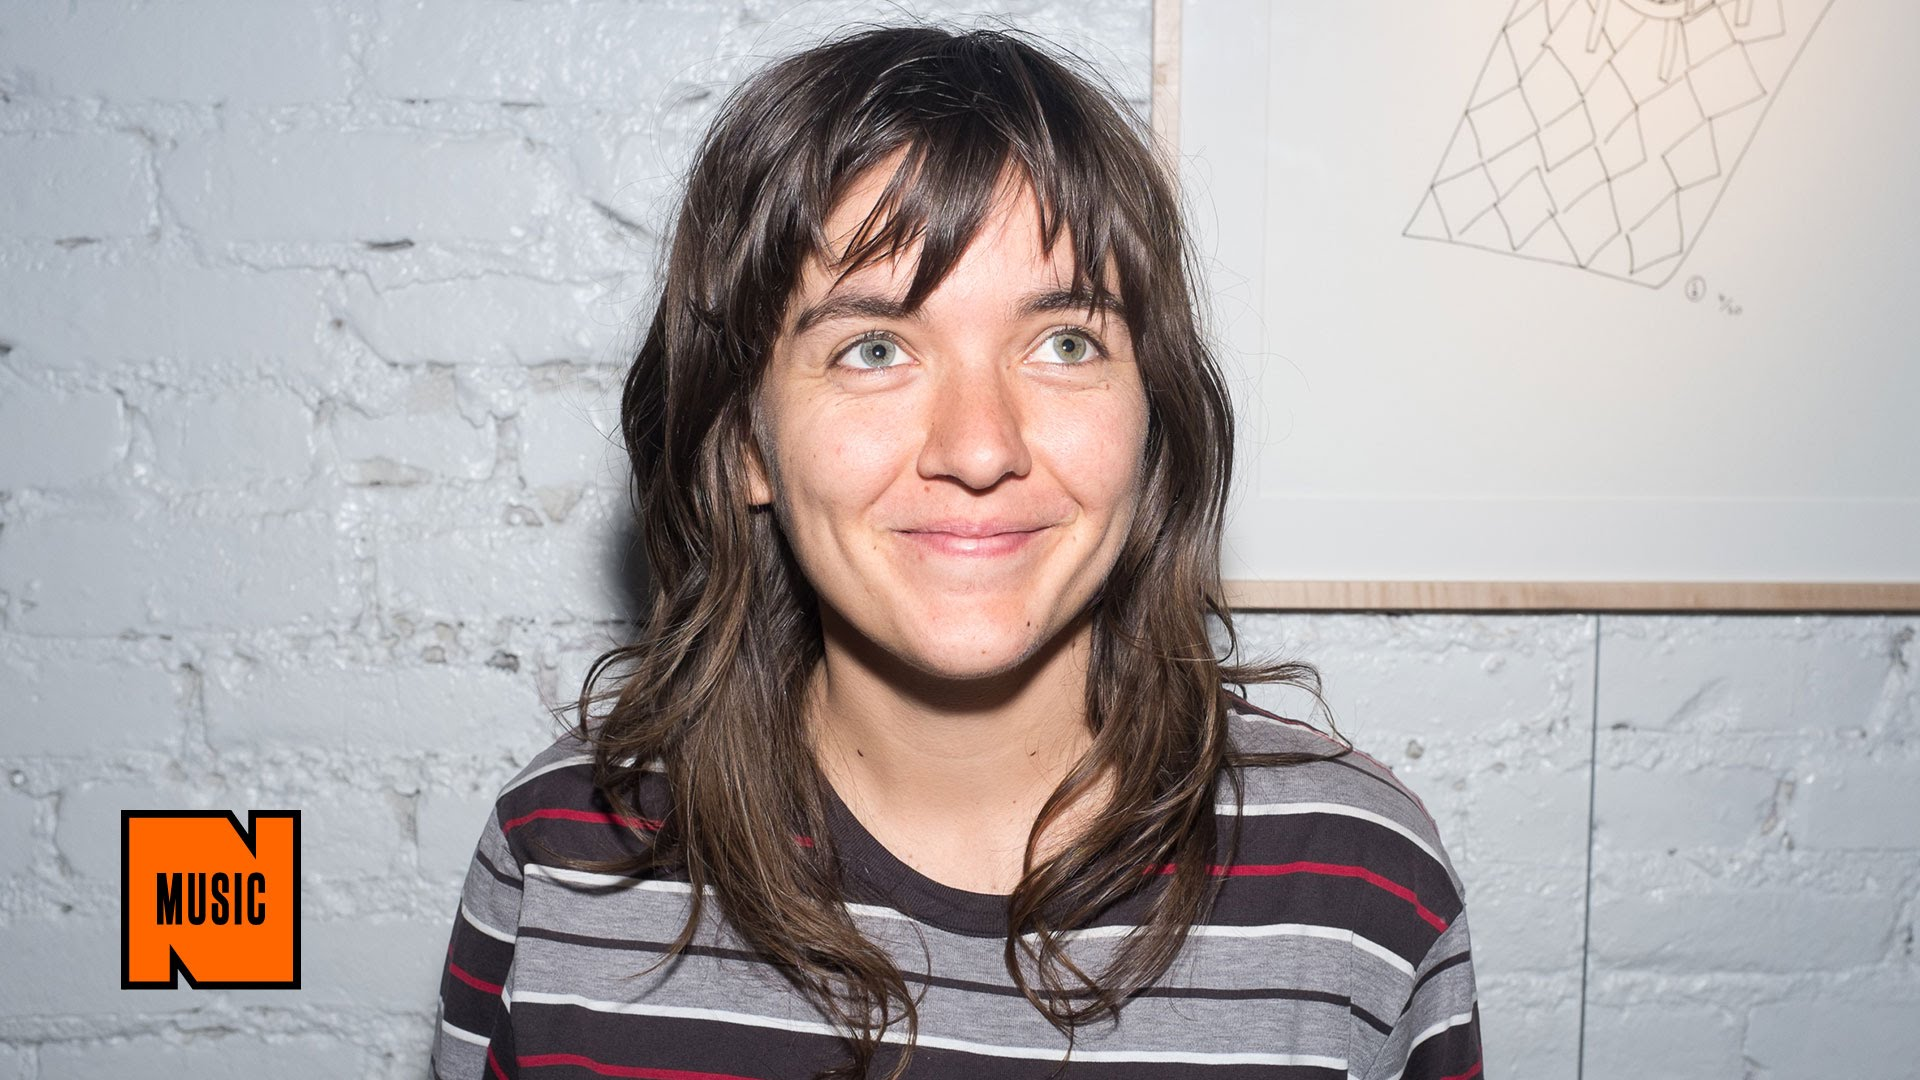 CourtneyBarnett